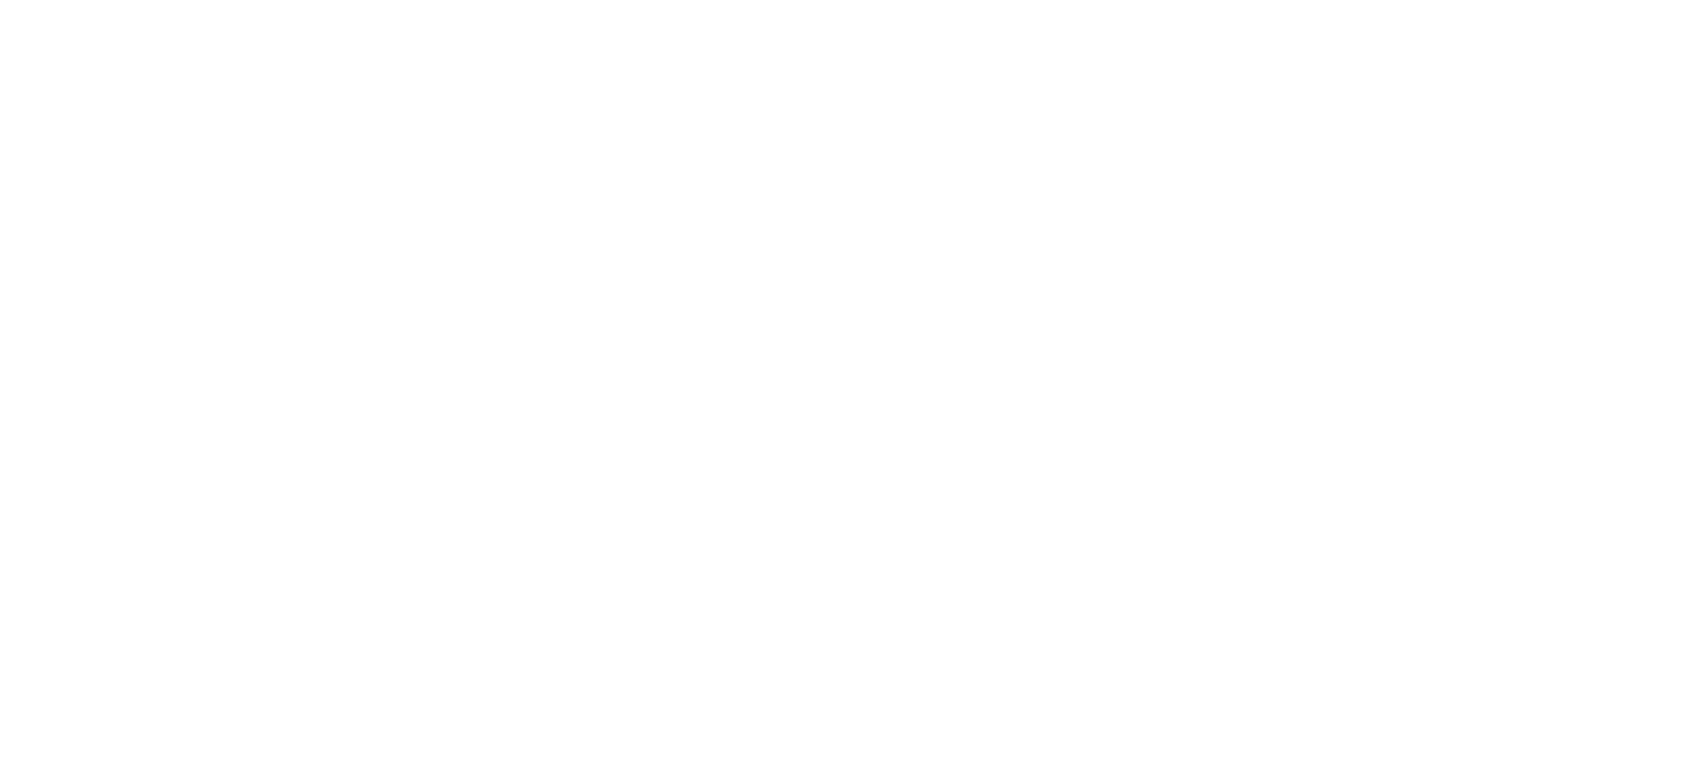 Berkshire Sexual Health Services - NHS Logo